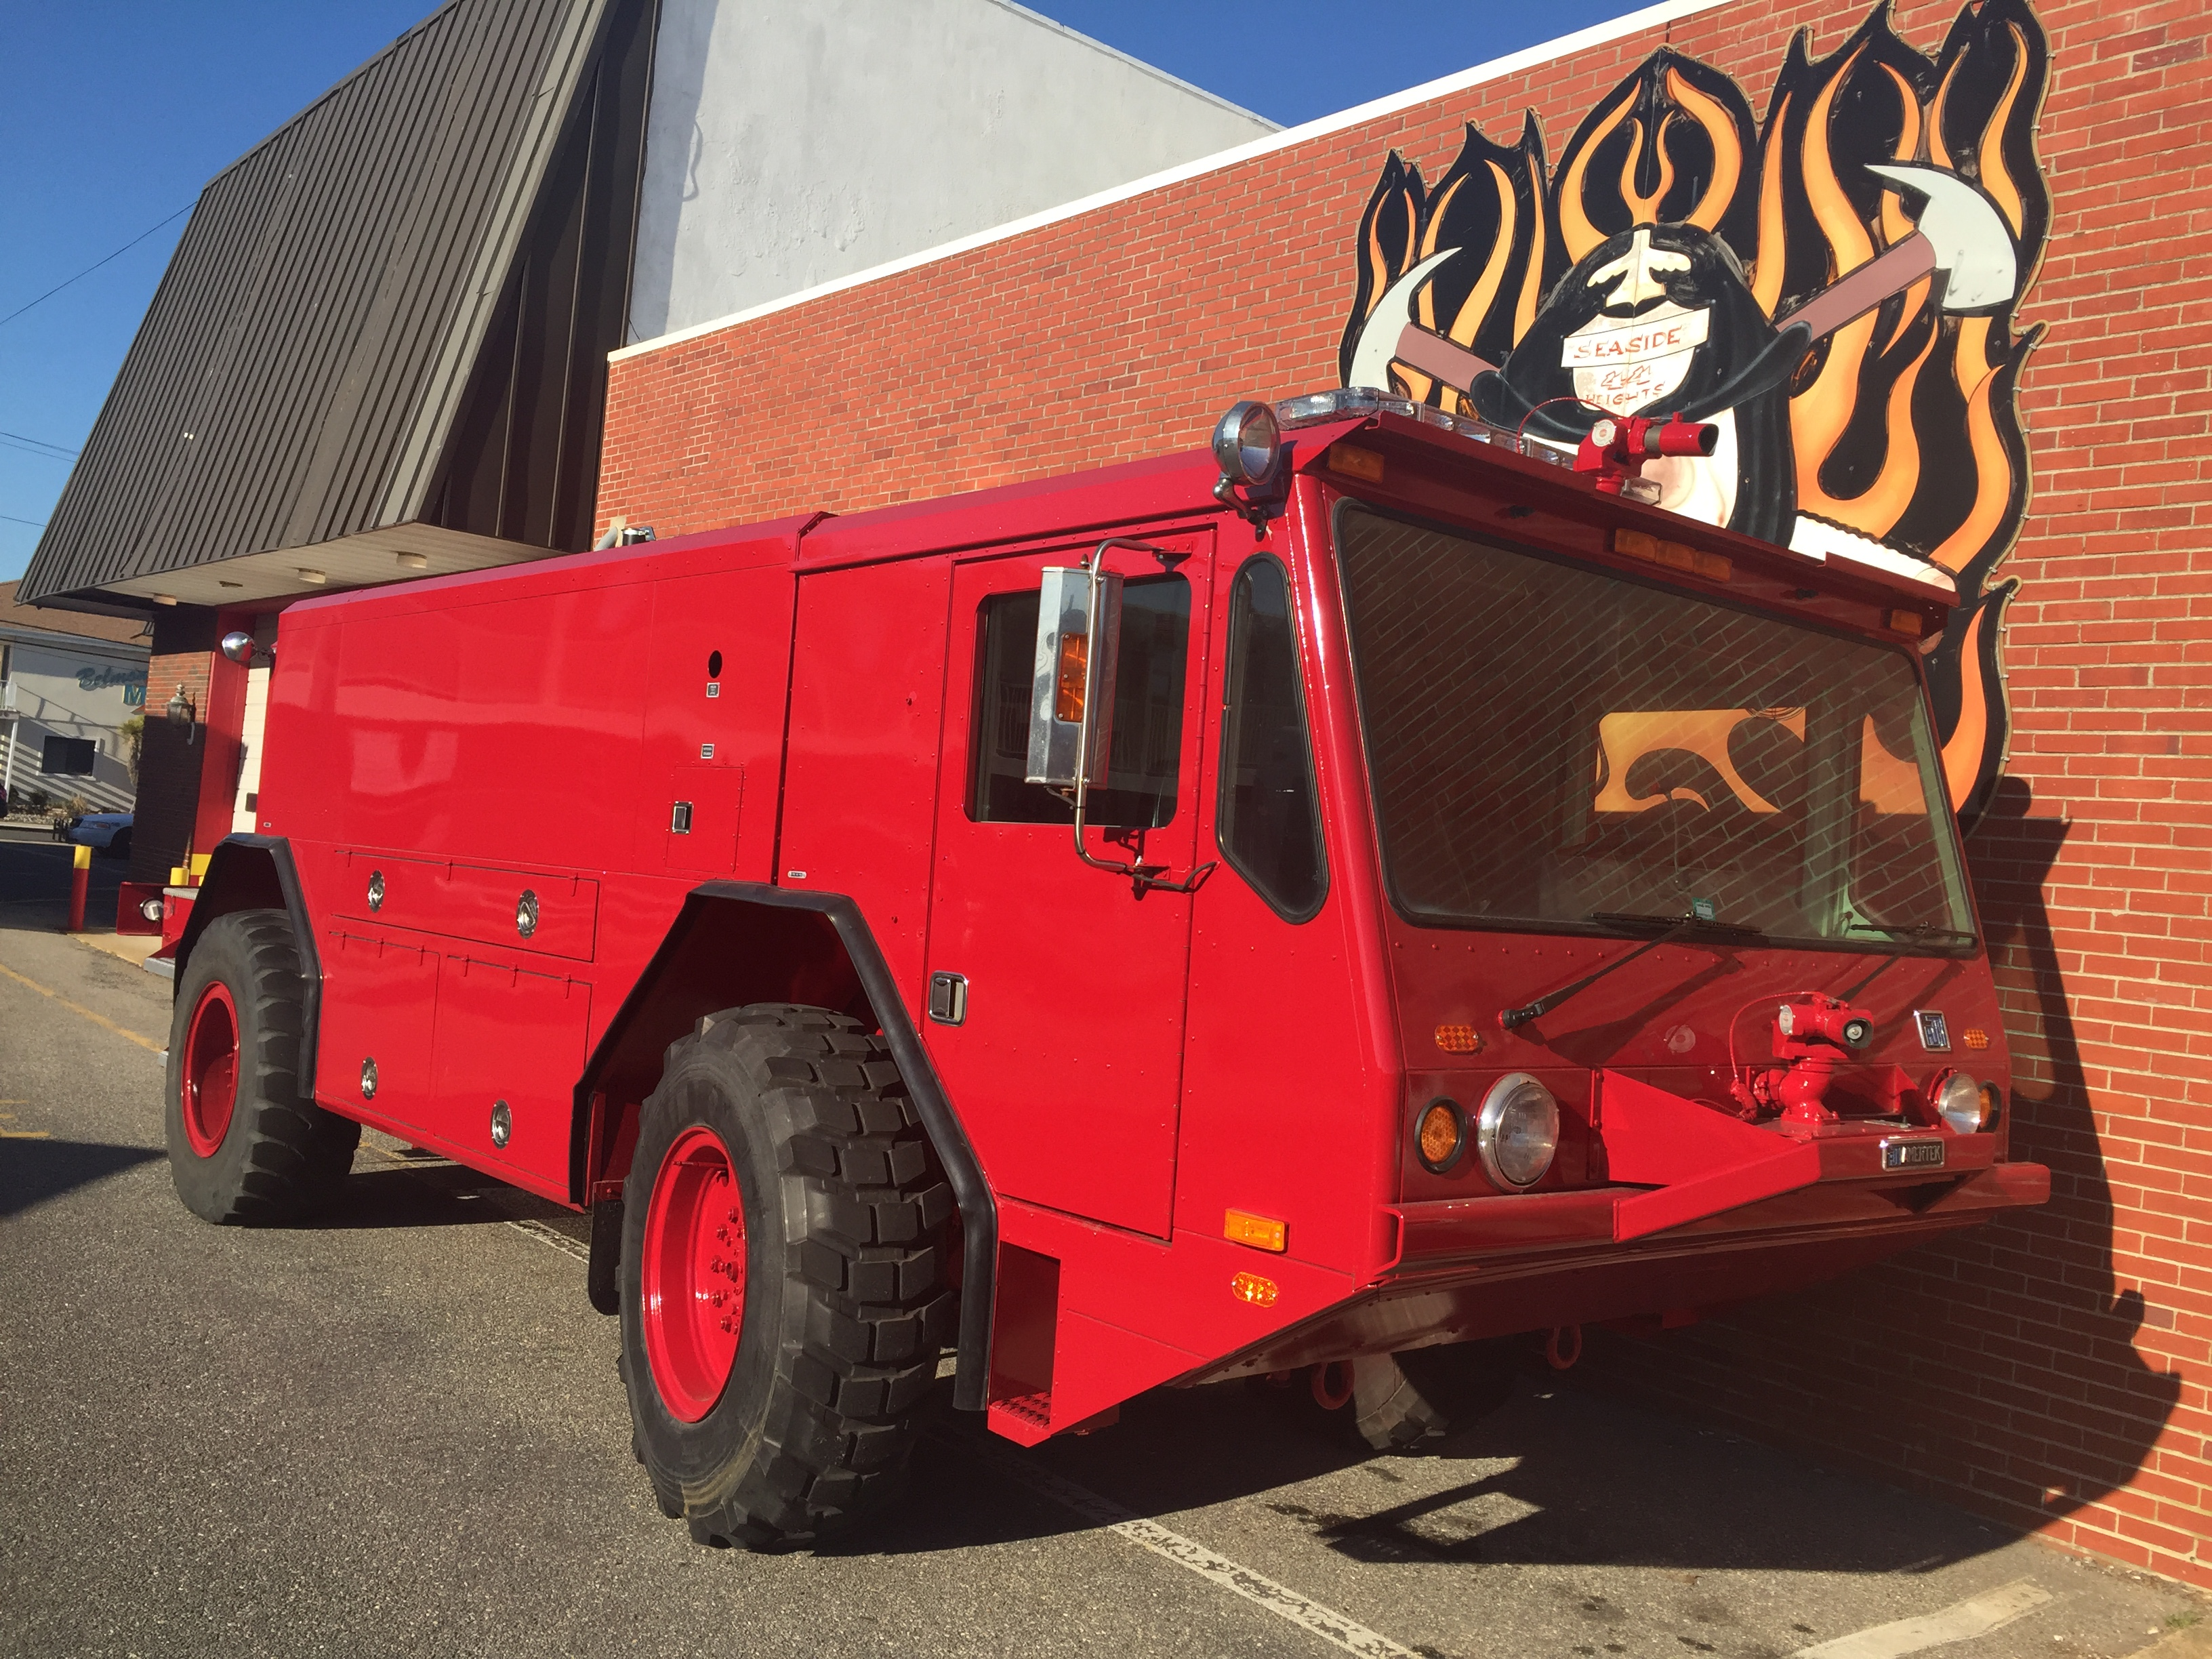 A Seaside Heights fire truck capable of fighting fires from the beach. (Photo: Daniel Nee)